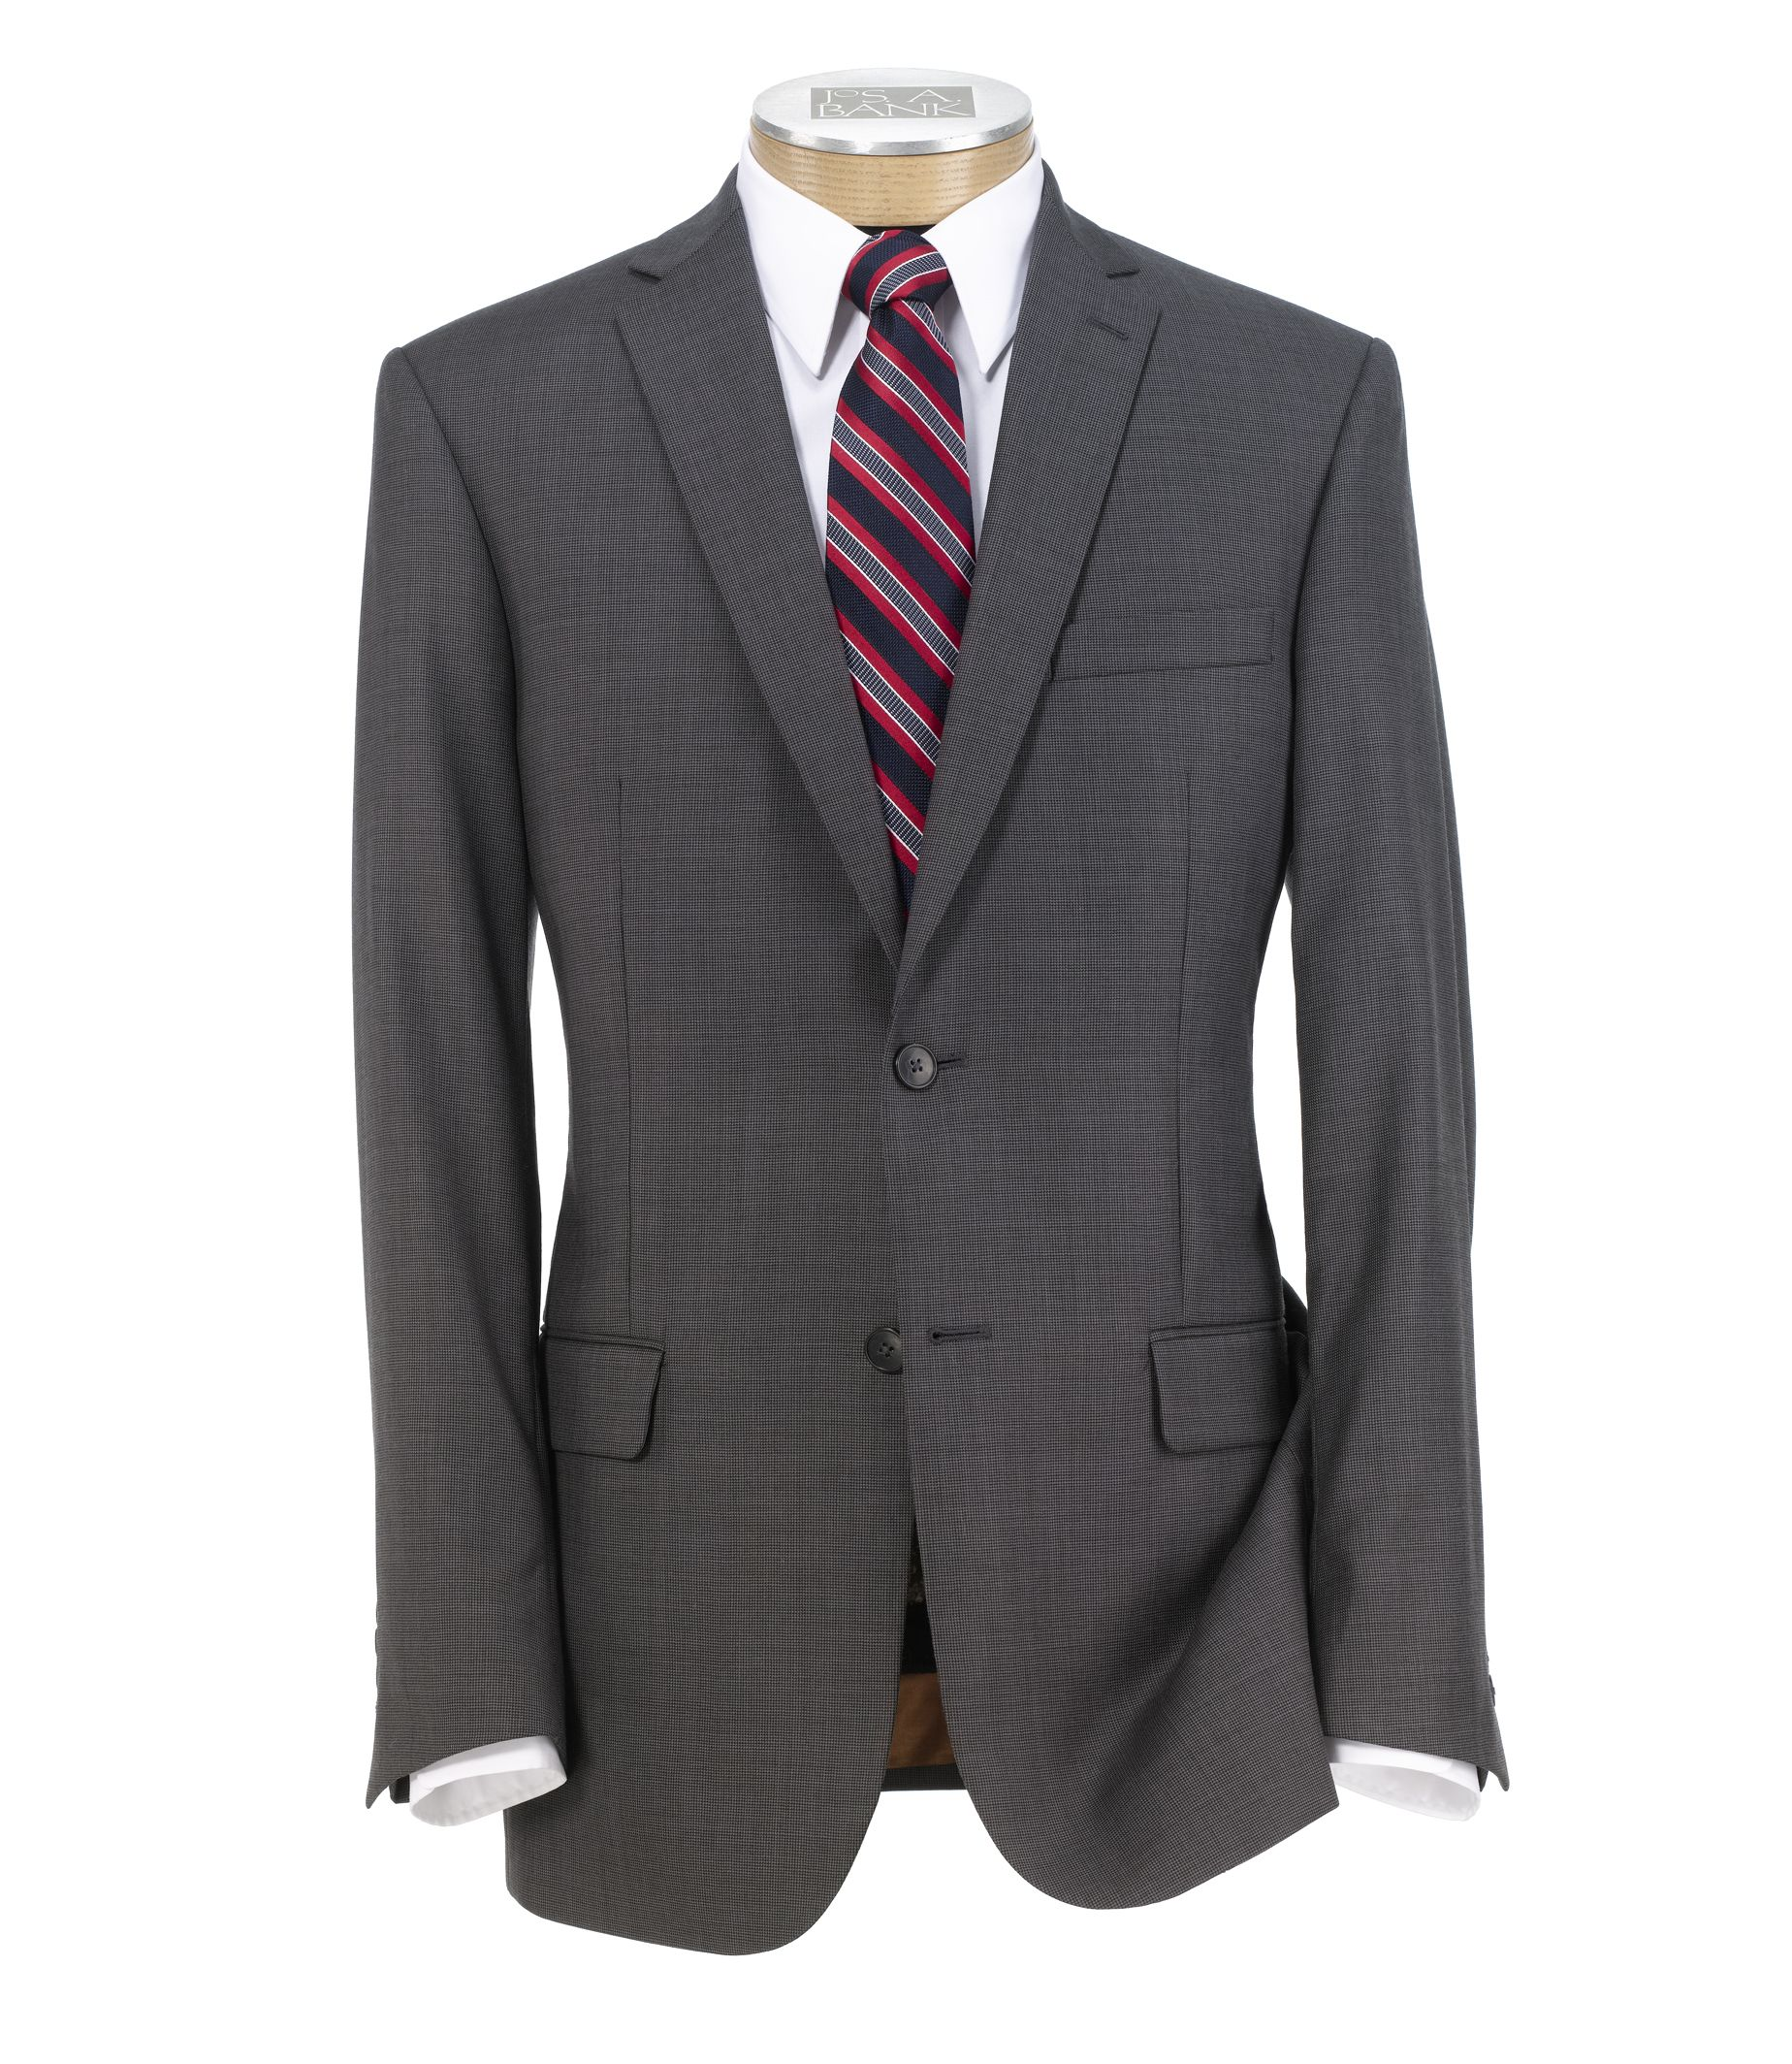 Joseph Slim Fit 2 Button Plain Front Wool Suit - Extended Sizes- Grey Mini Houndstooth